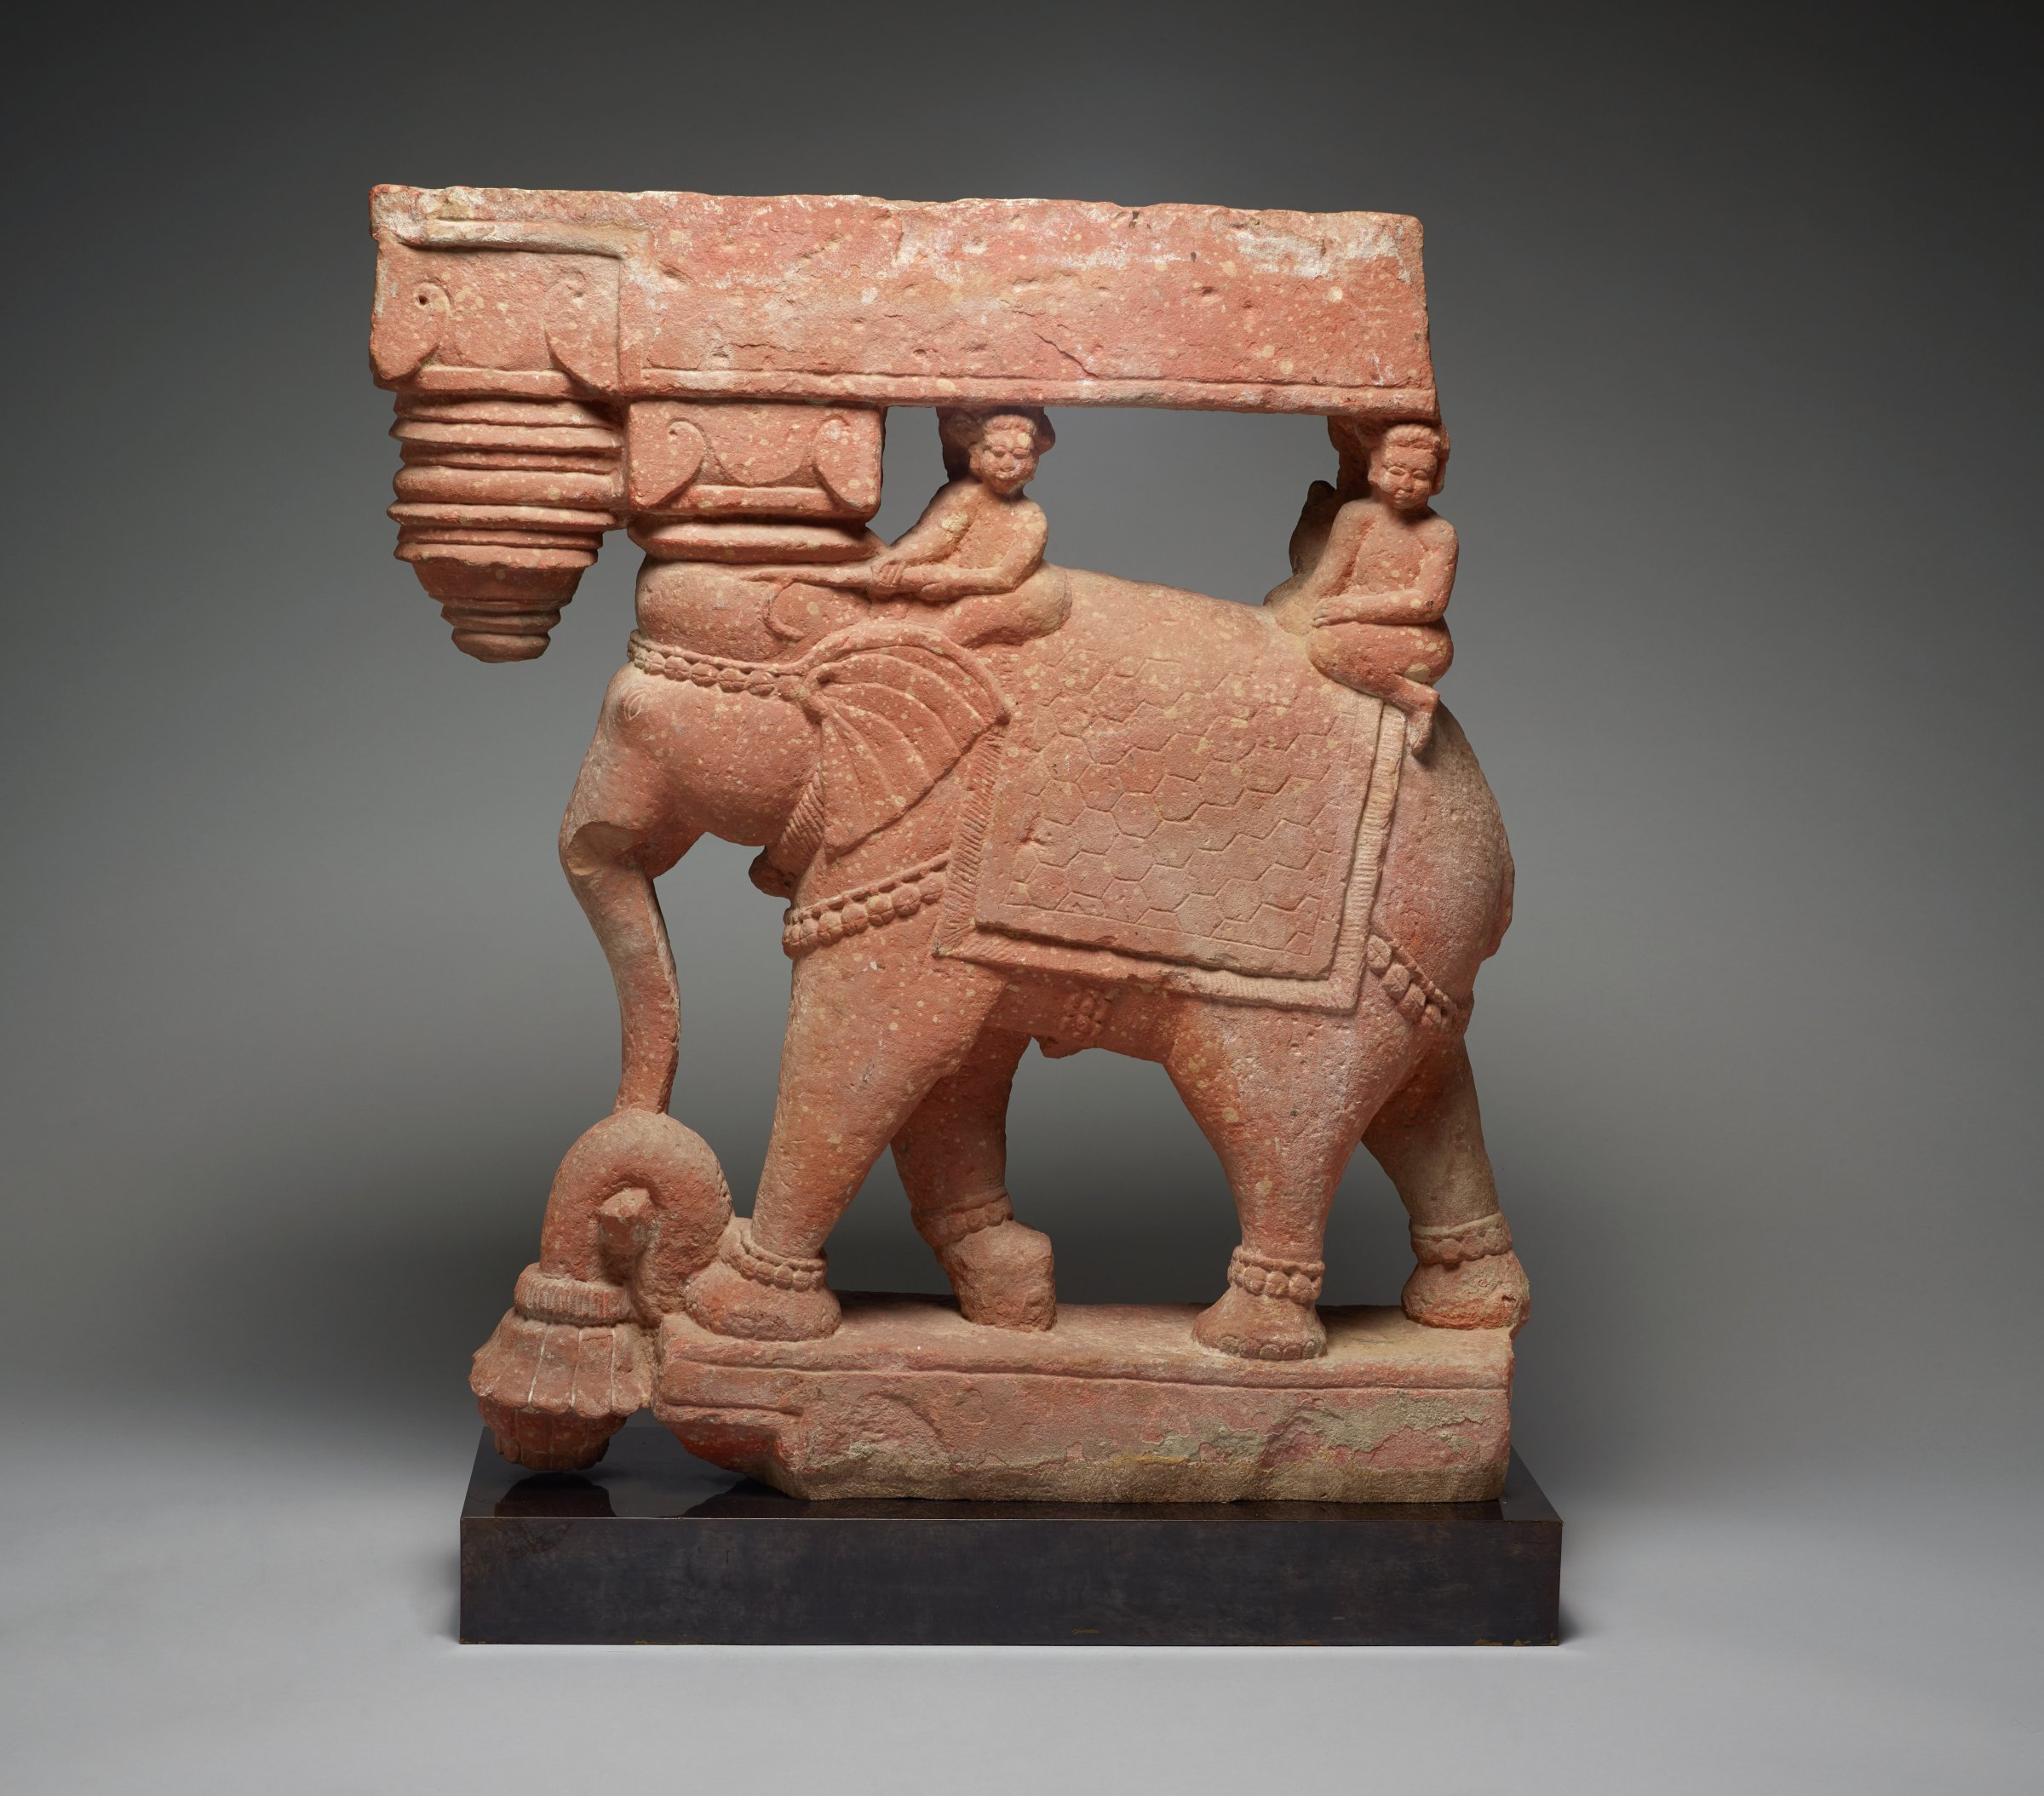 Roof Bracket of Adorned Elephant with Two Riders, India, sandstone